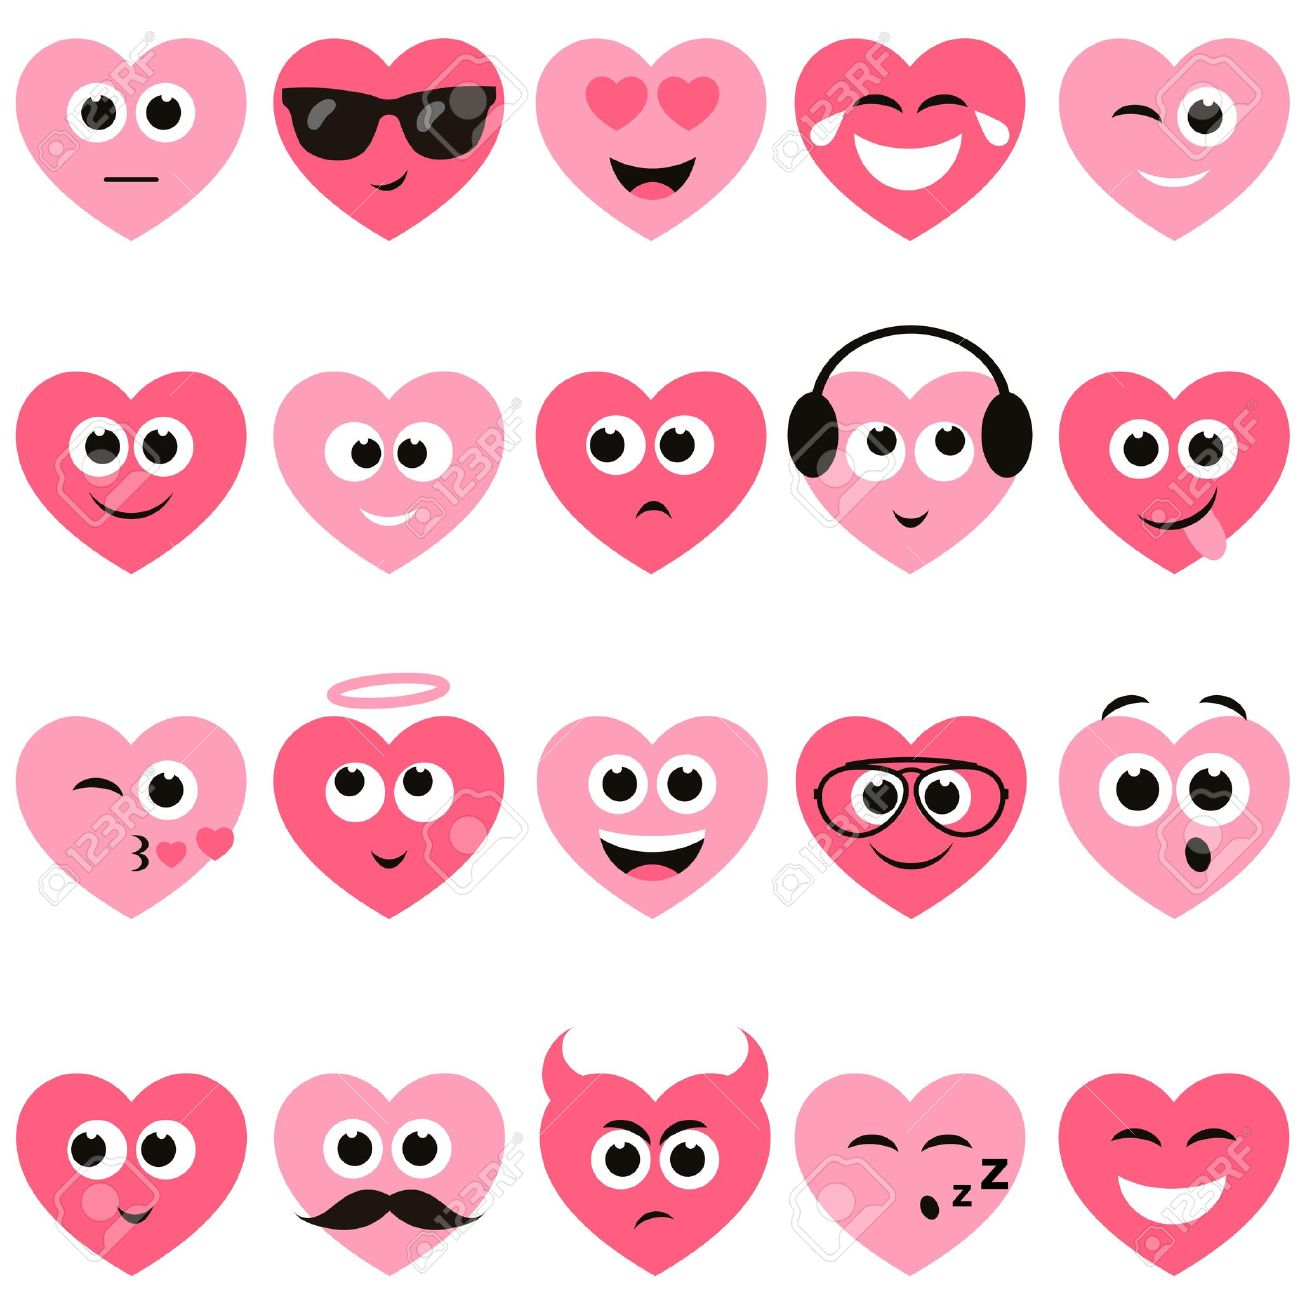 red and pink hearts with smiley faces royalty free cliparts, vectors